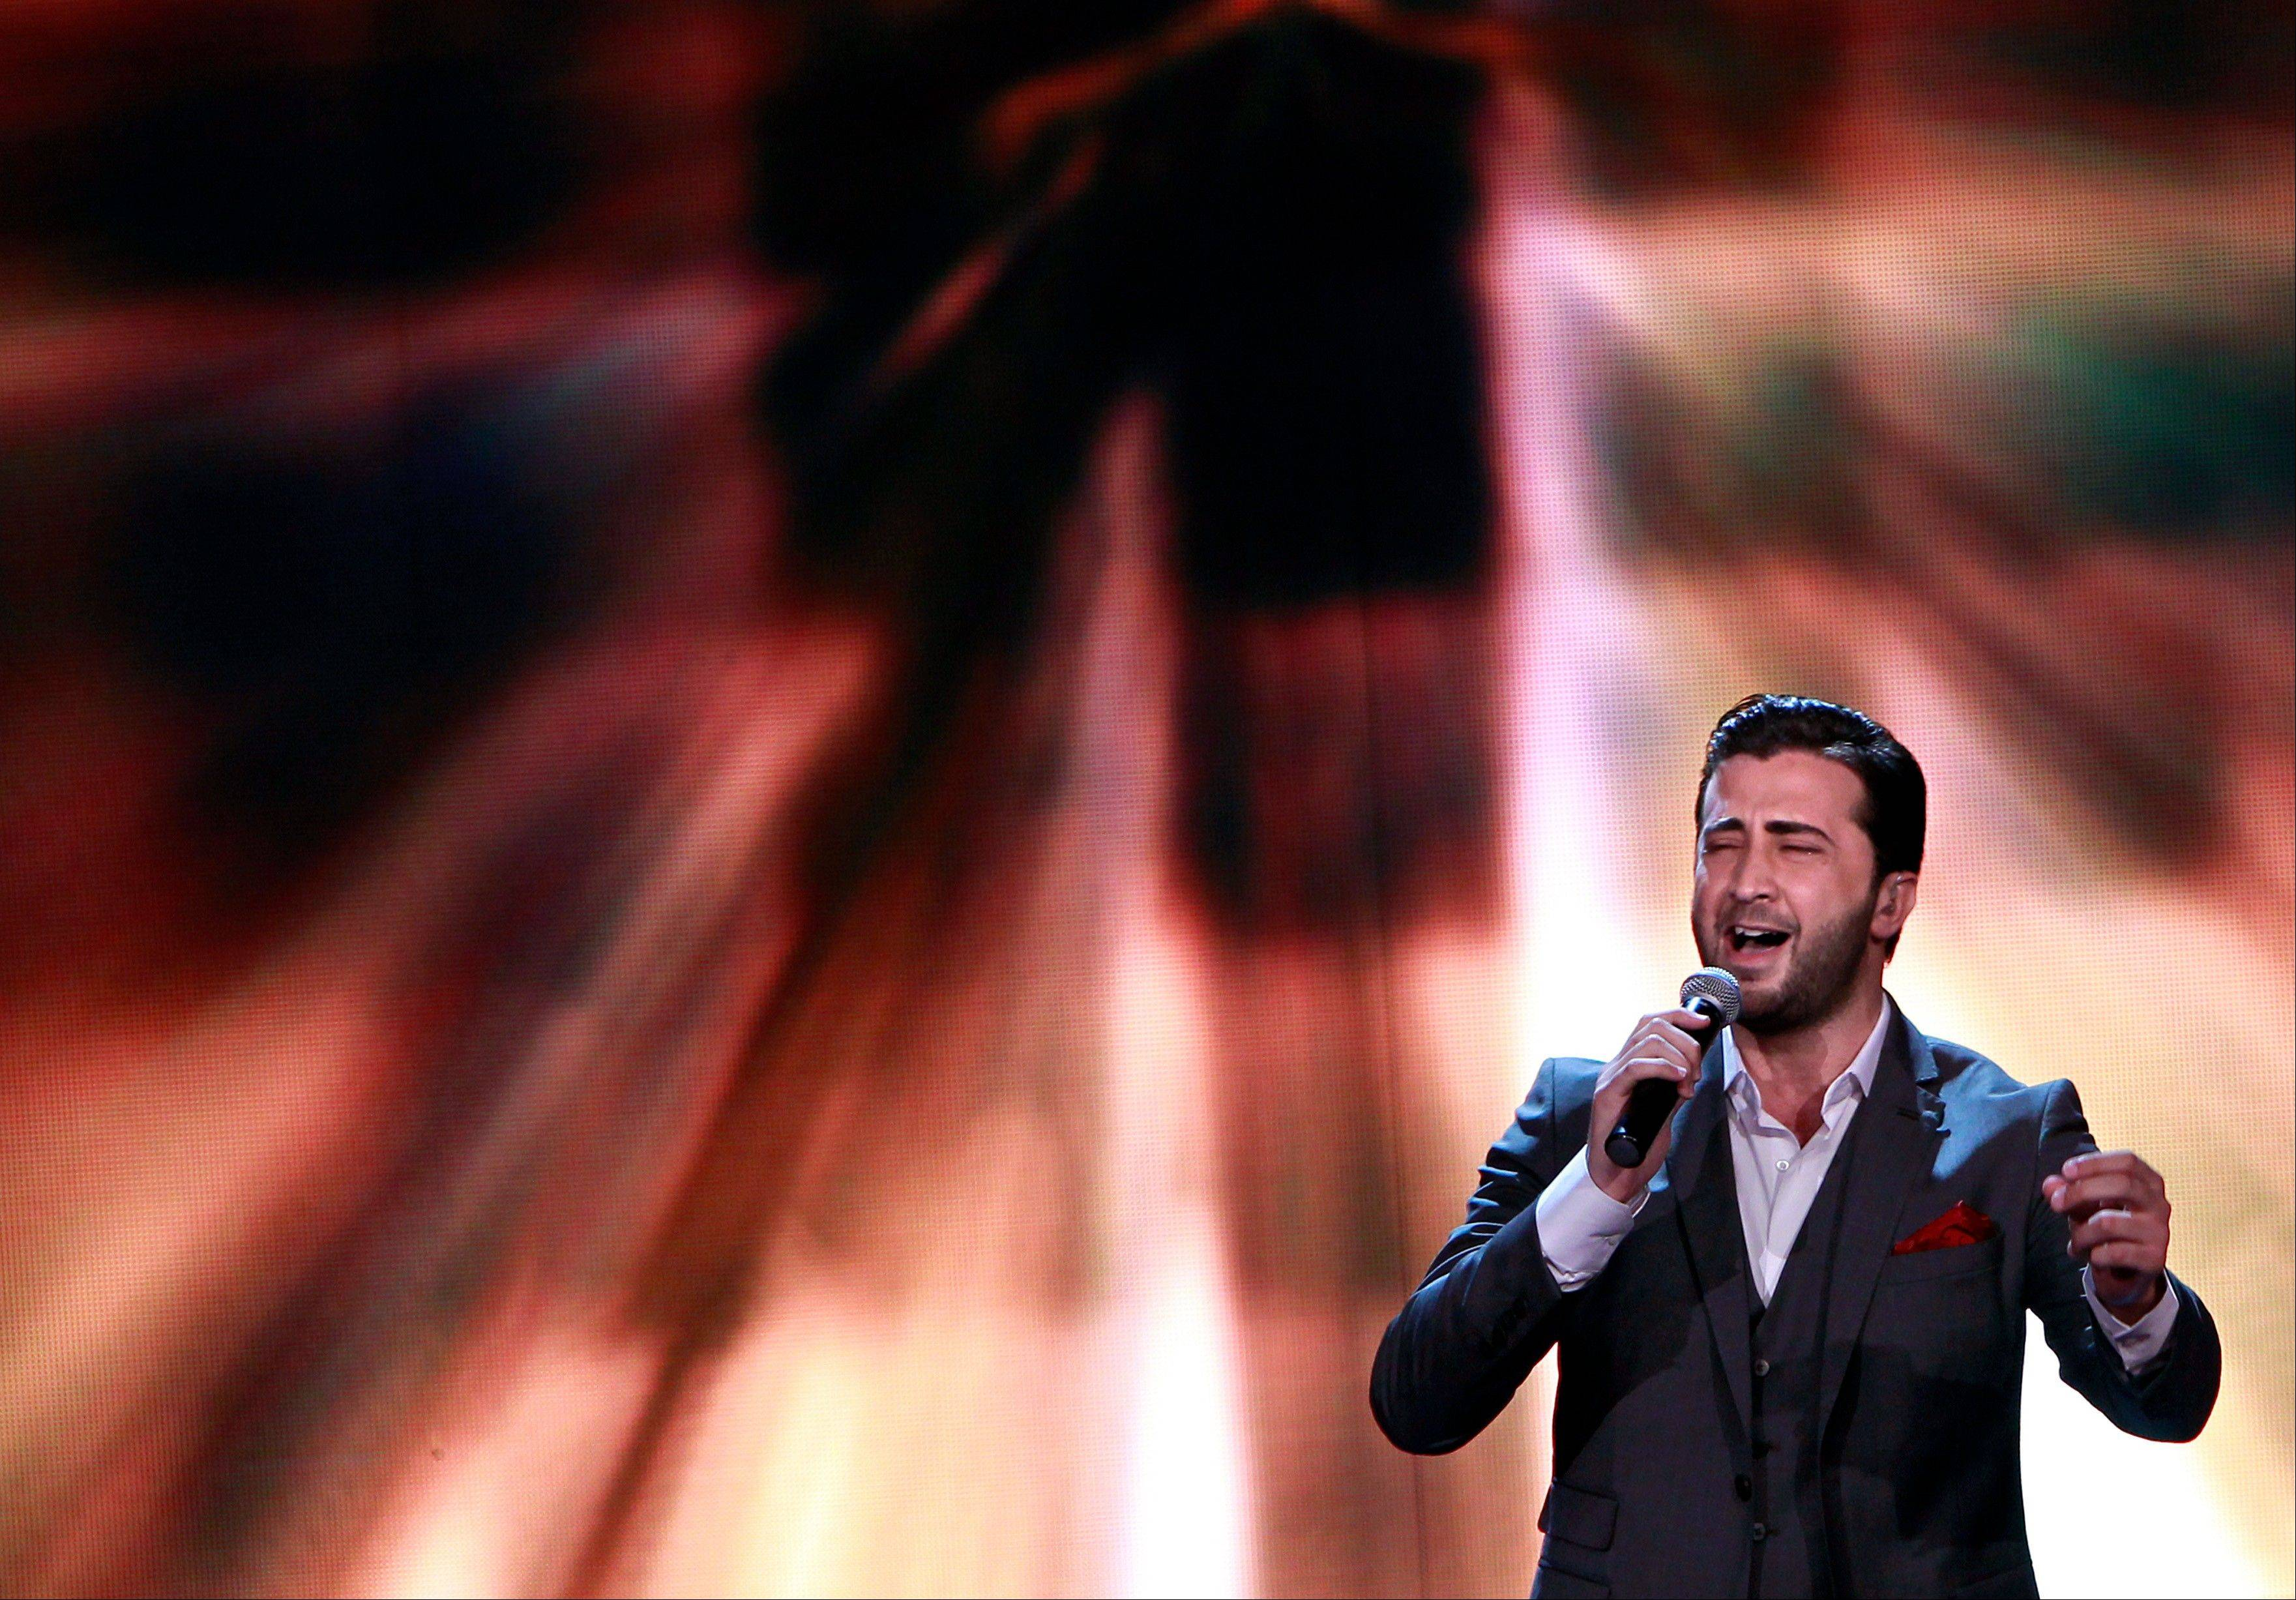 Syrian singer Abdel Karim Hamdan performs during the Arab Idol Show broadcast by MBC Arabic satellite channel.